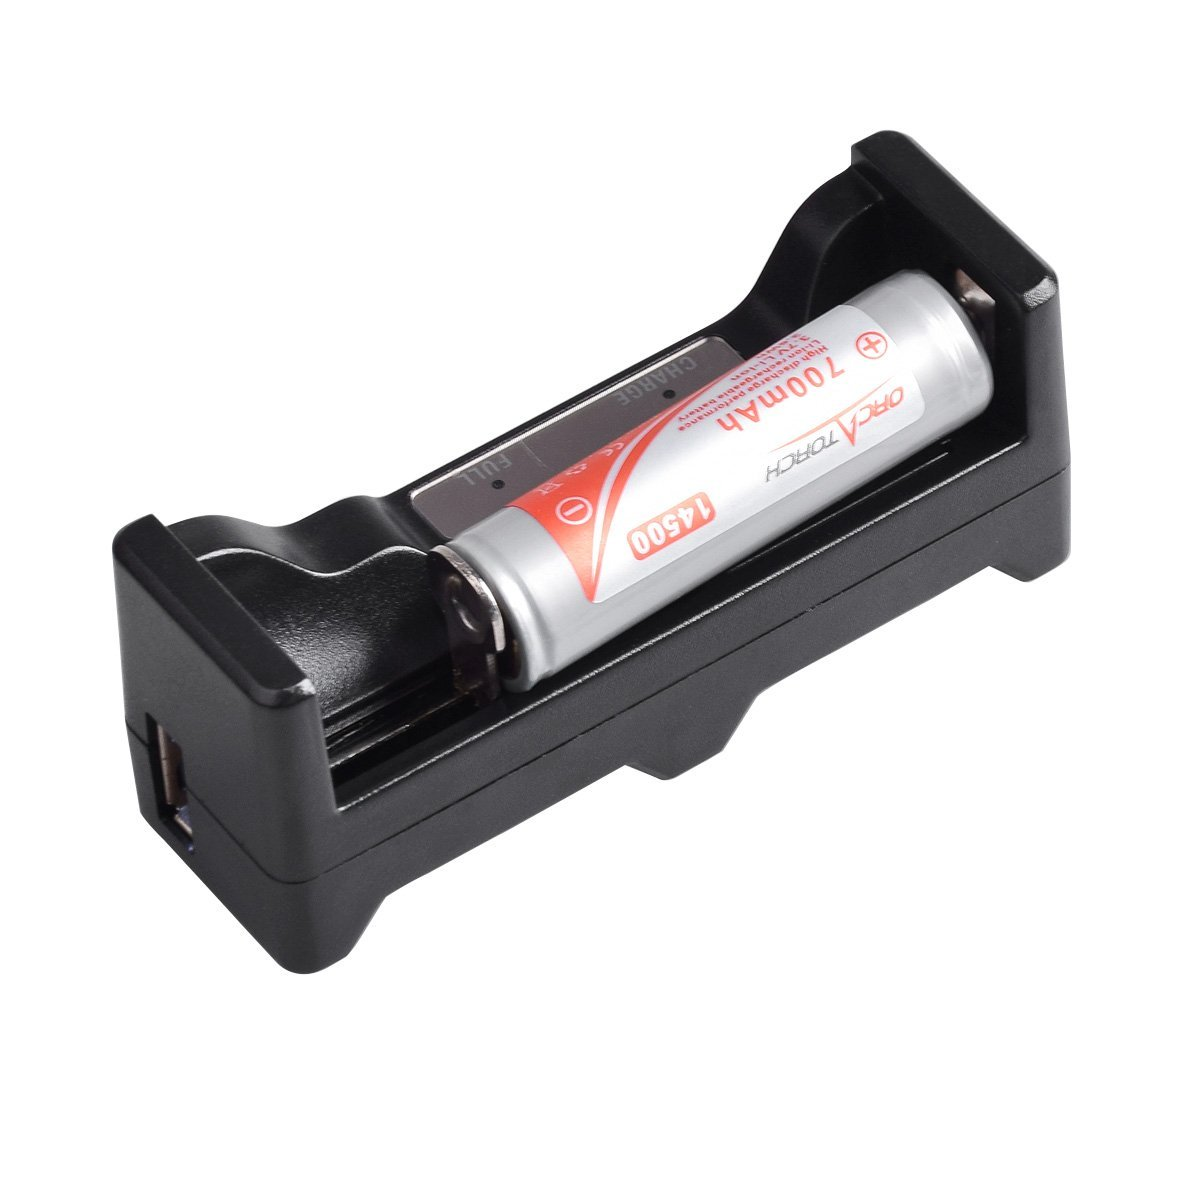 ORCATORCH 14500 700mAh 3.7V Li-ion Rechargeable Battery + 1*Charger For Rechargeable 14500/18650/26650/AA/AAA/C battery